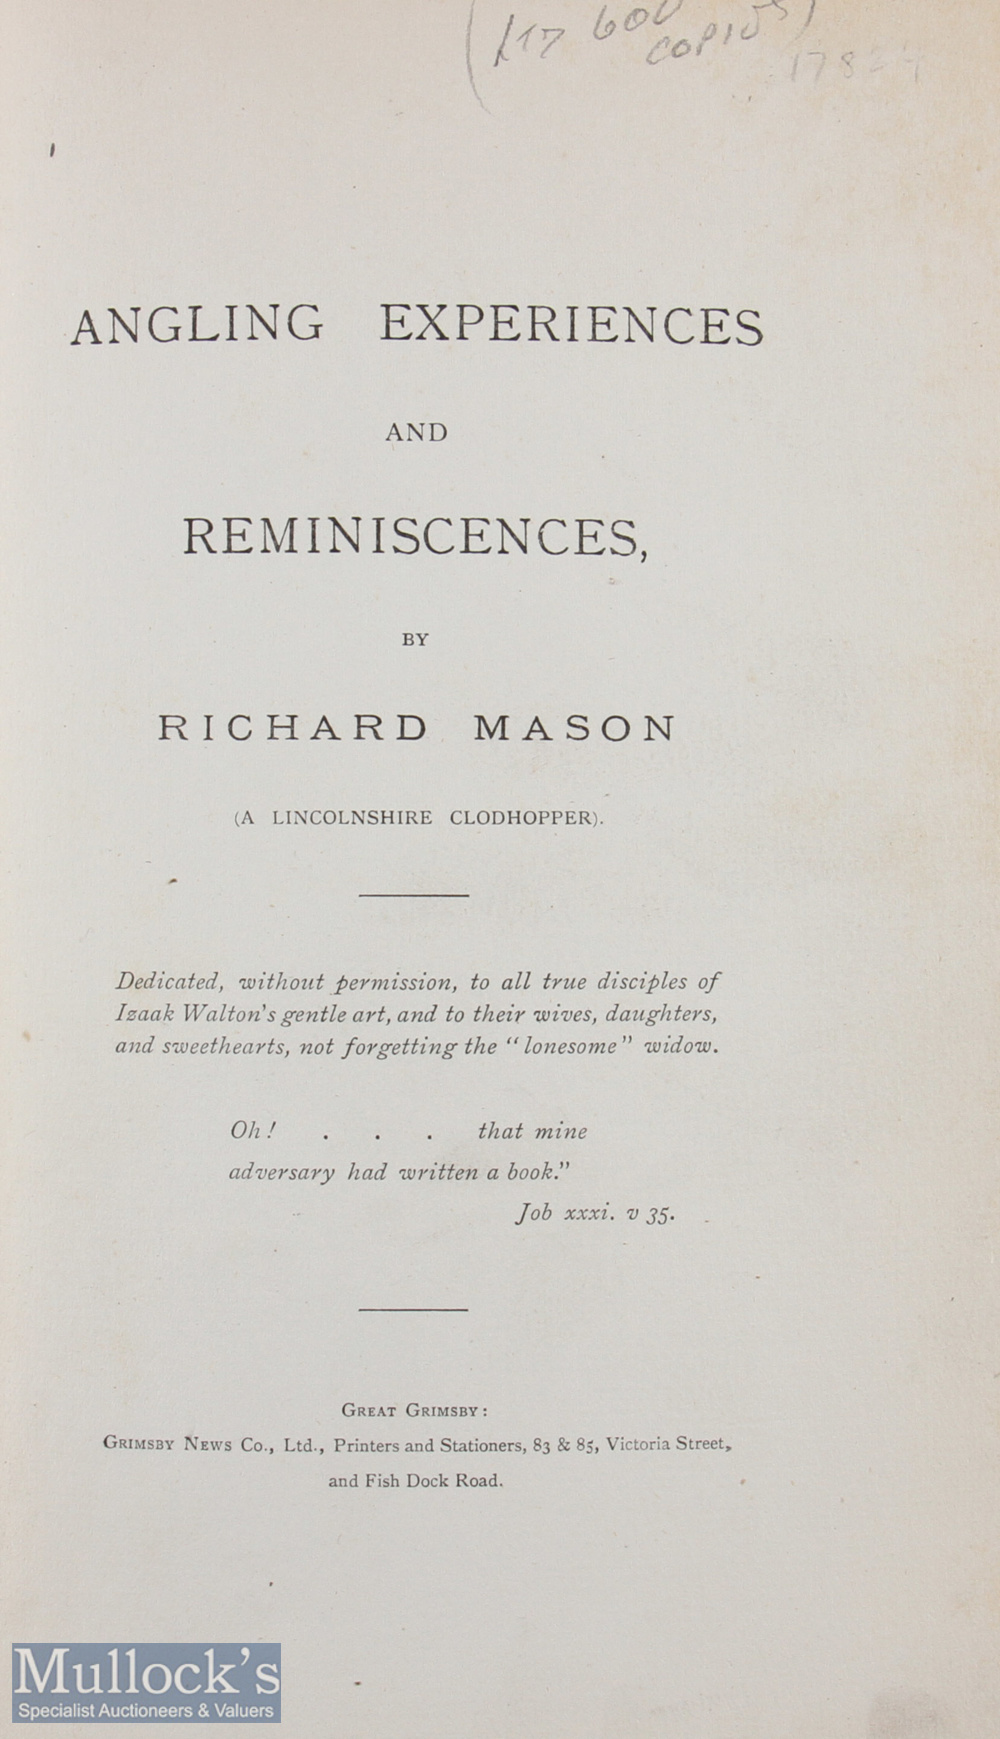 """Mason, Richard – """"Angling Experiences and Reminiscences"""" limited edition of 600 copies c1900, - Image 2 of 2"""